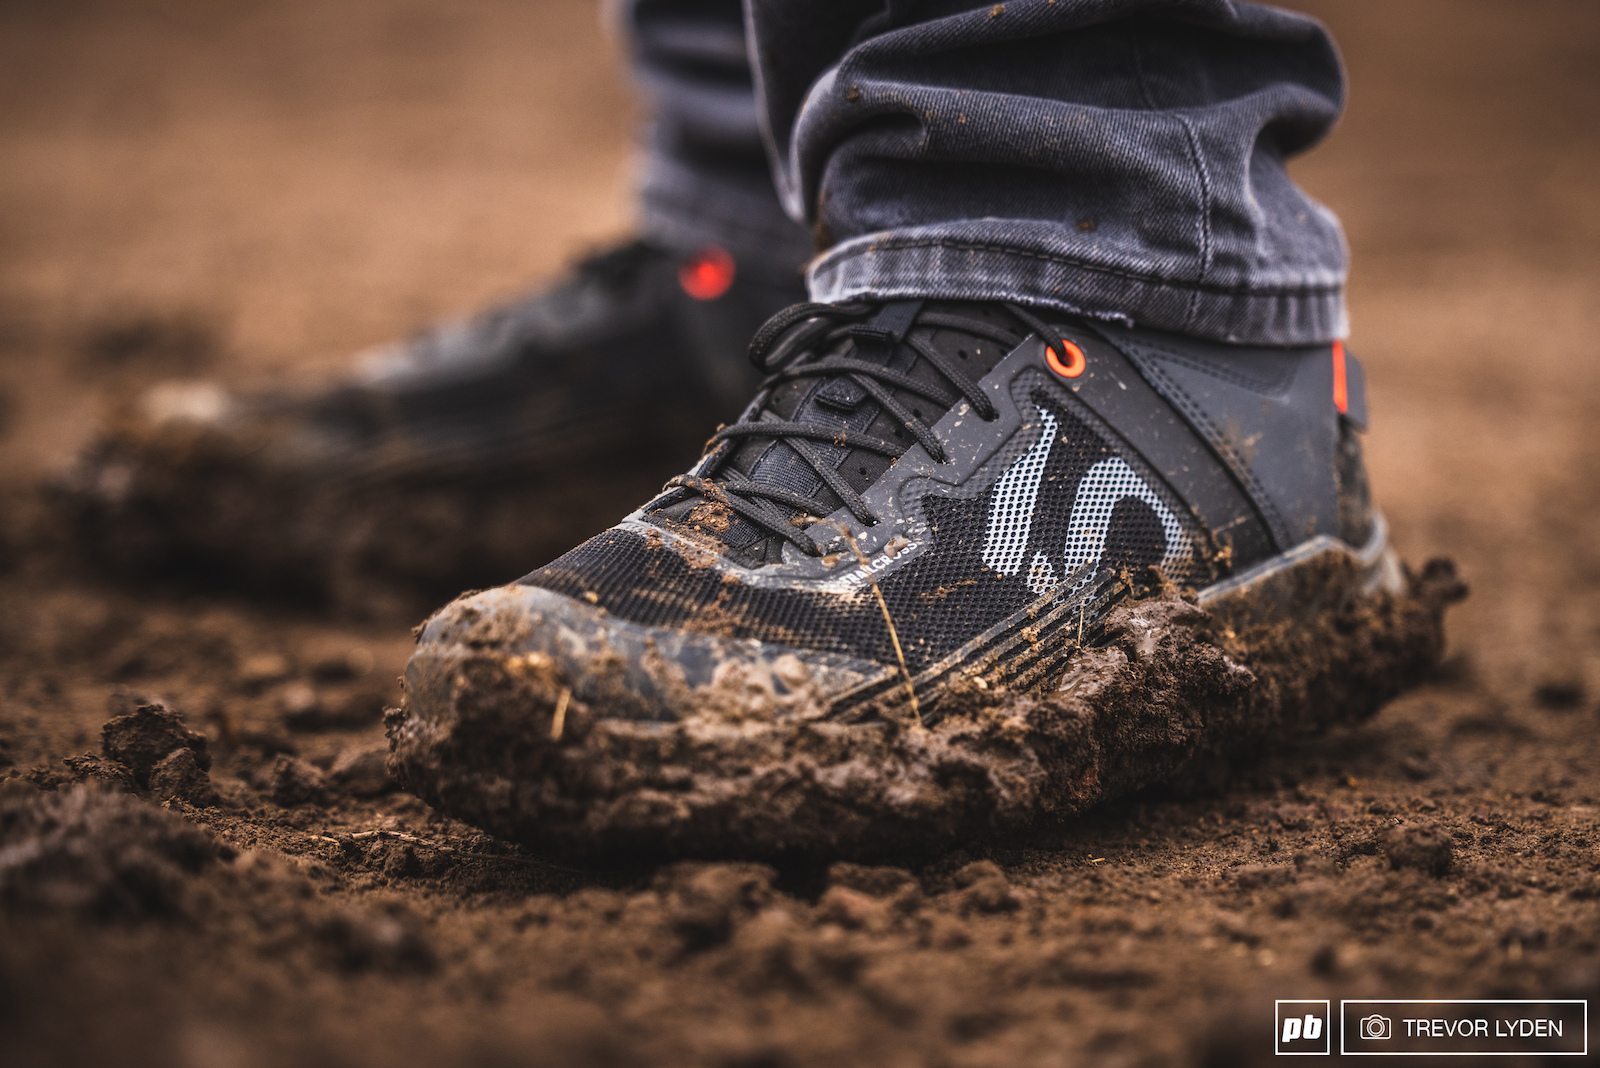 Official shoes of the event. And official mud as well.